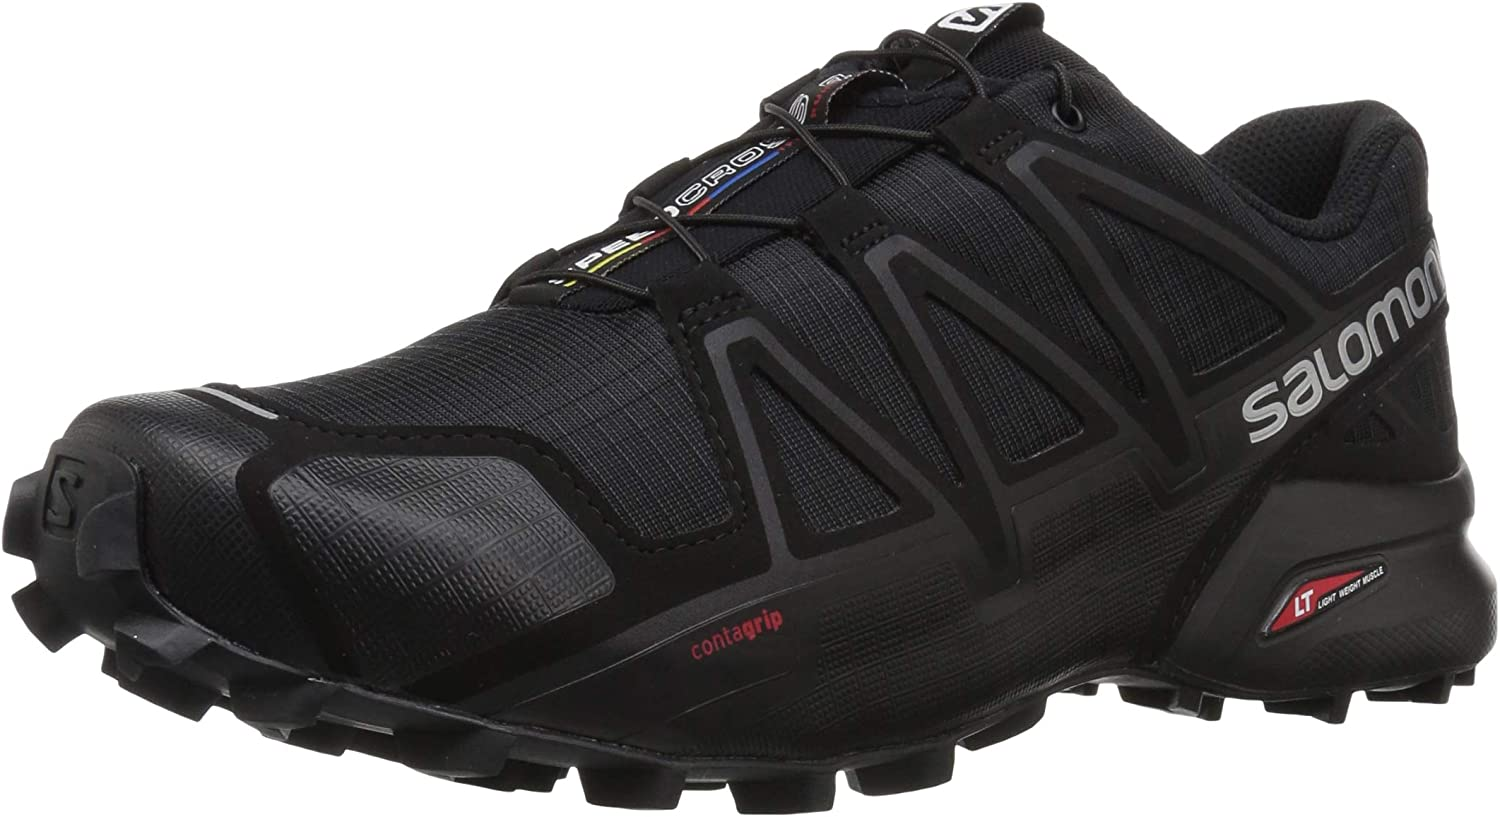 Salomon Men s Speedcross 4 Trail Running Shoes, Black Black BLACK METALLIC, 12.5 Wide